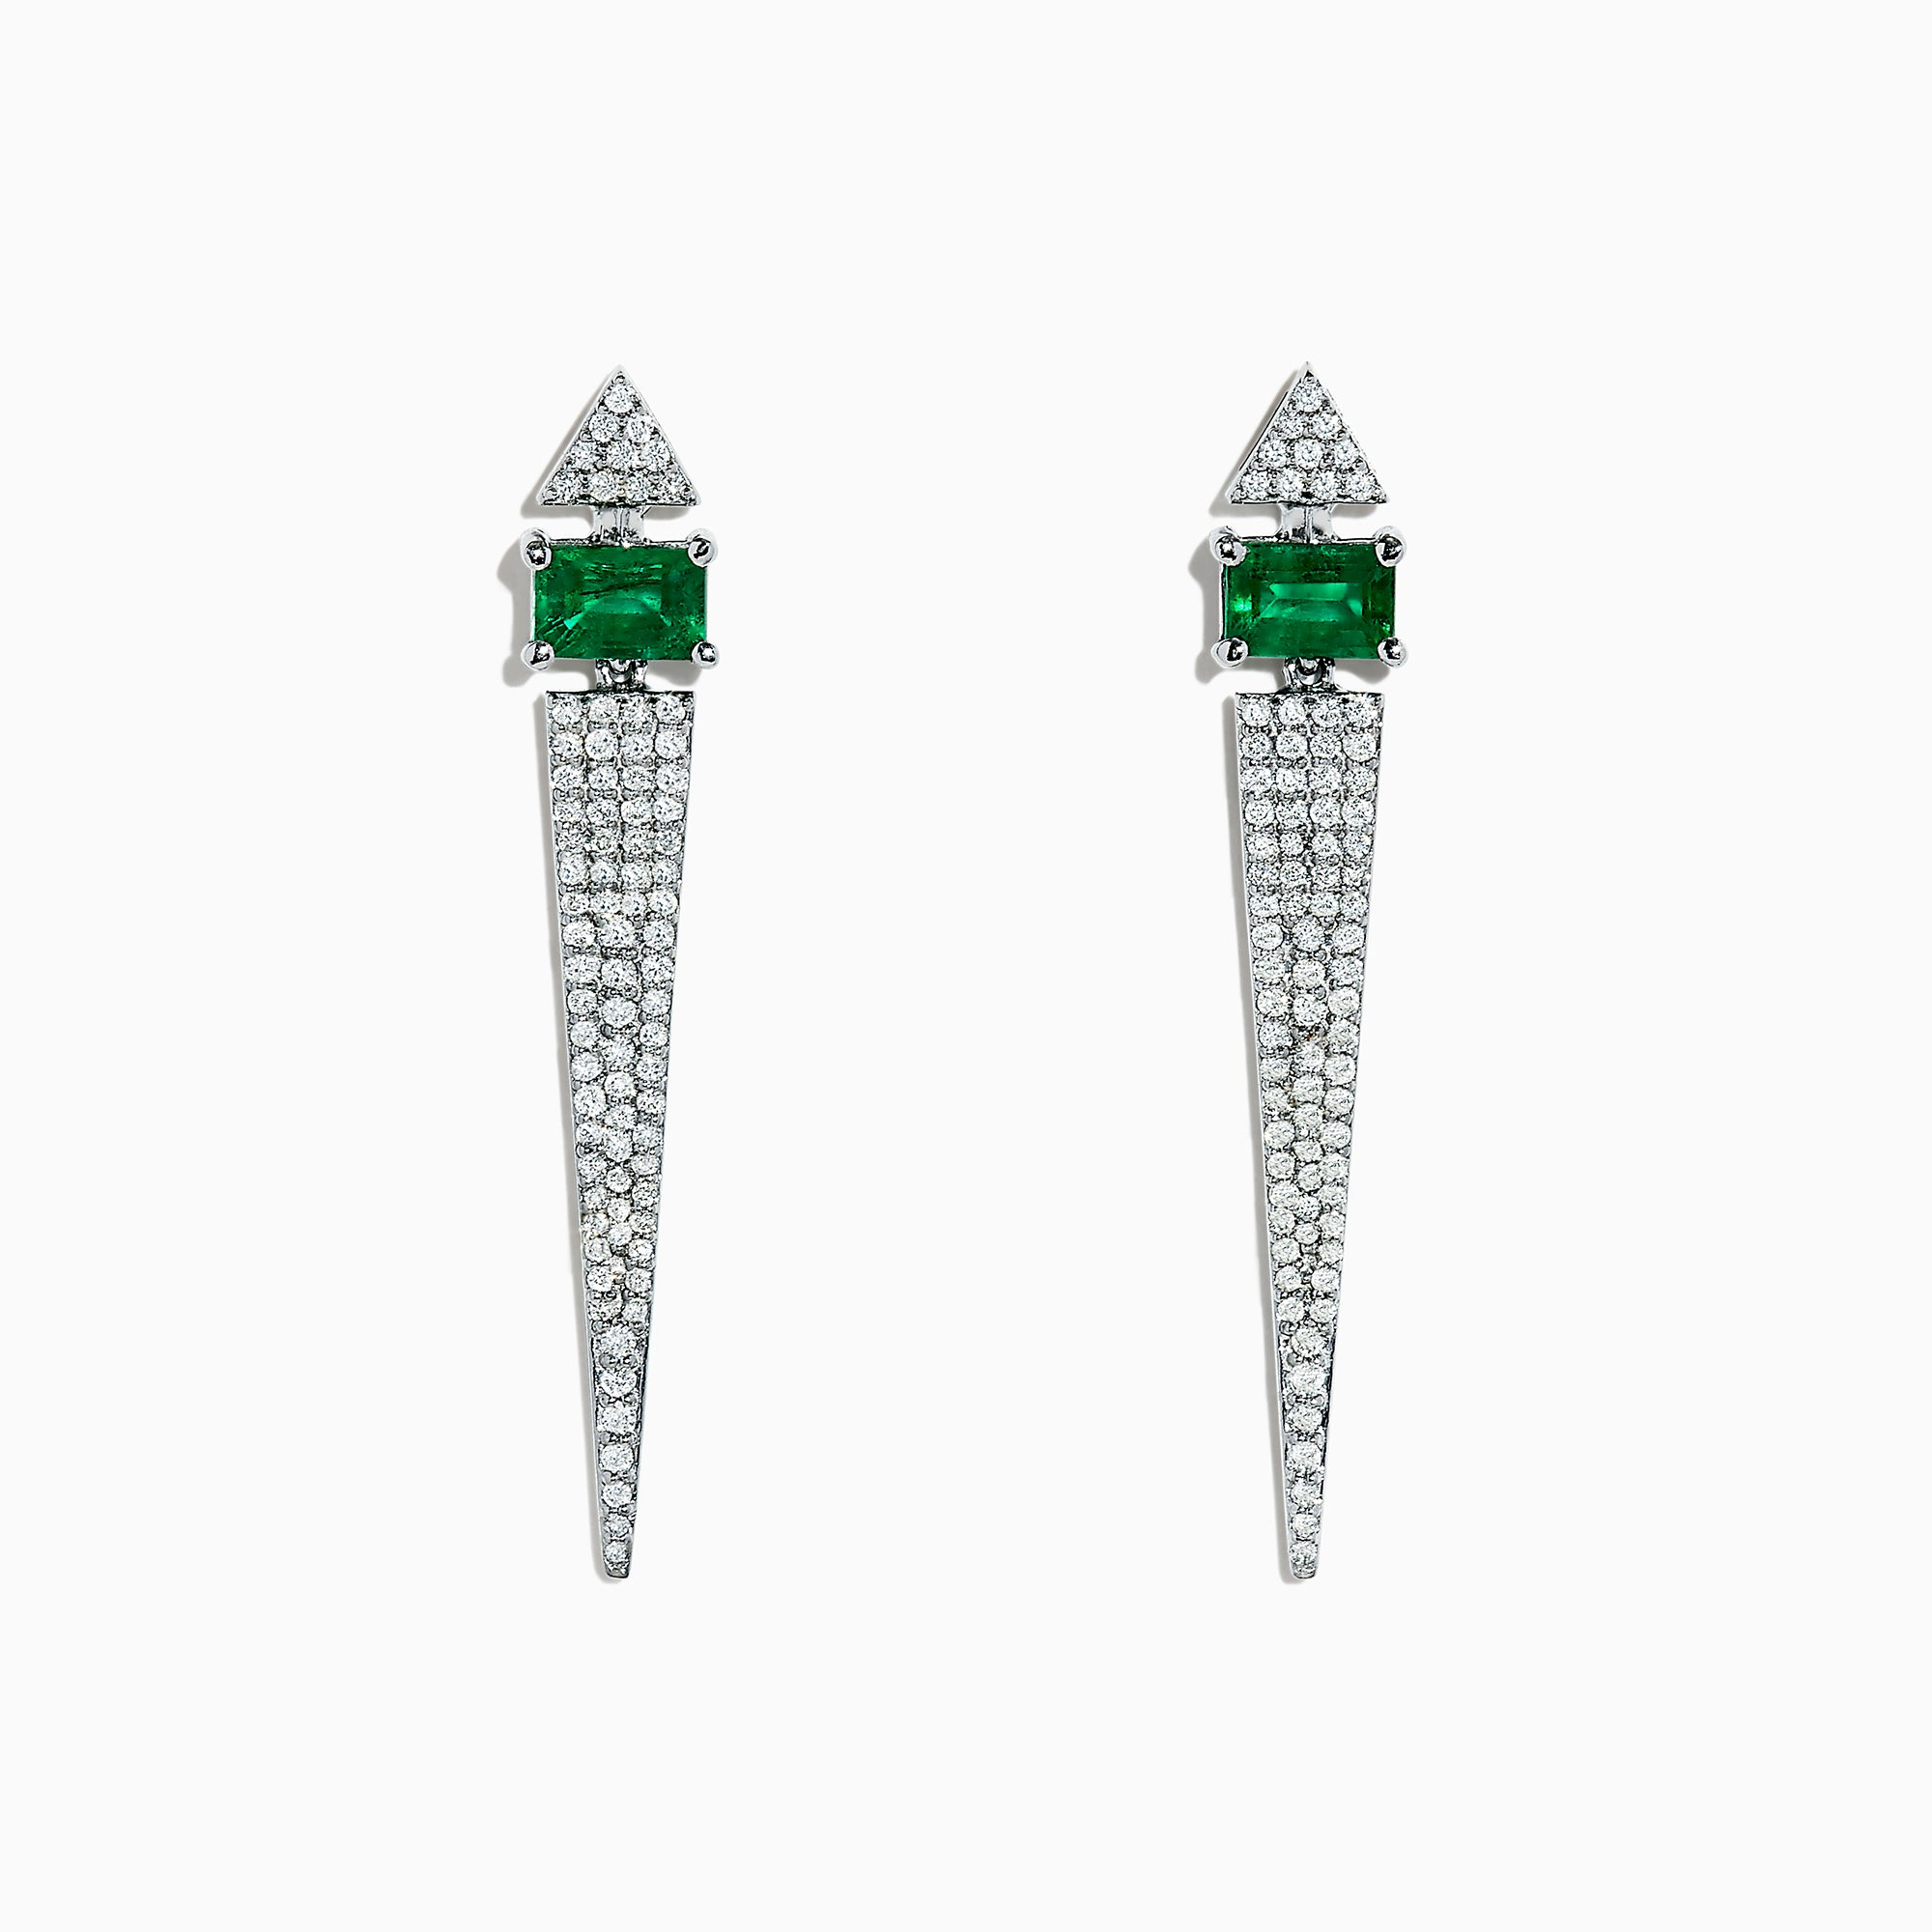 Effy Brasilica 14K White Gold Emerald & Diamond Vertical Earrings, 1.81 TCW